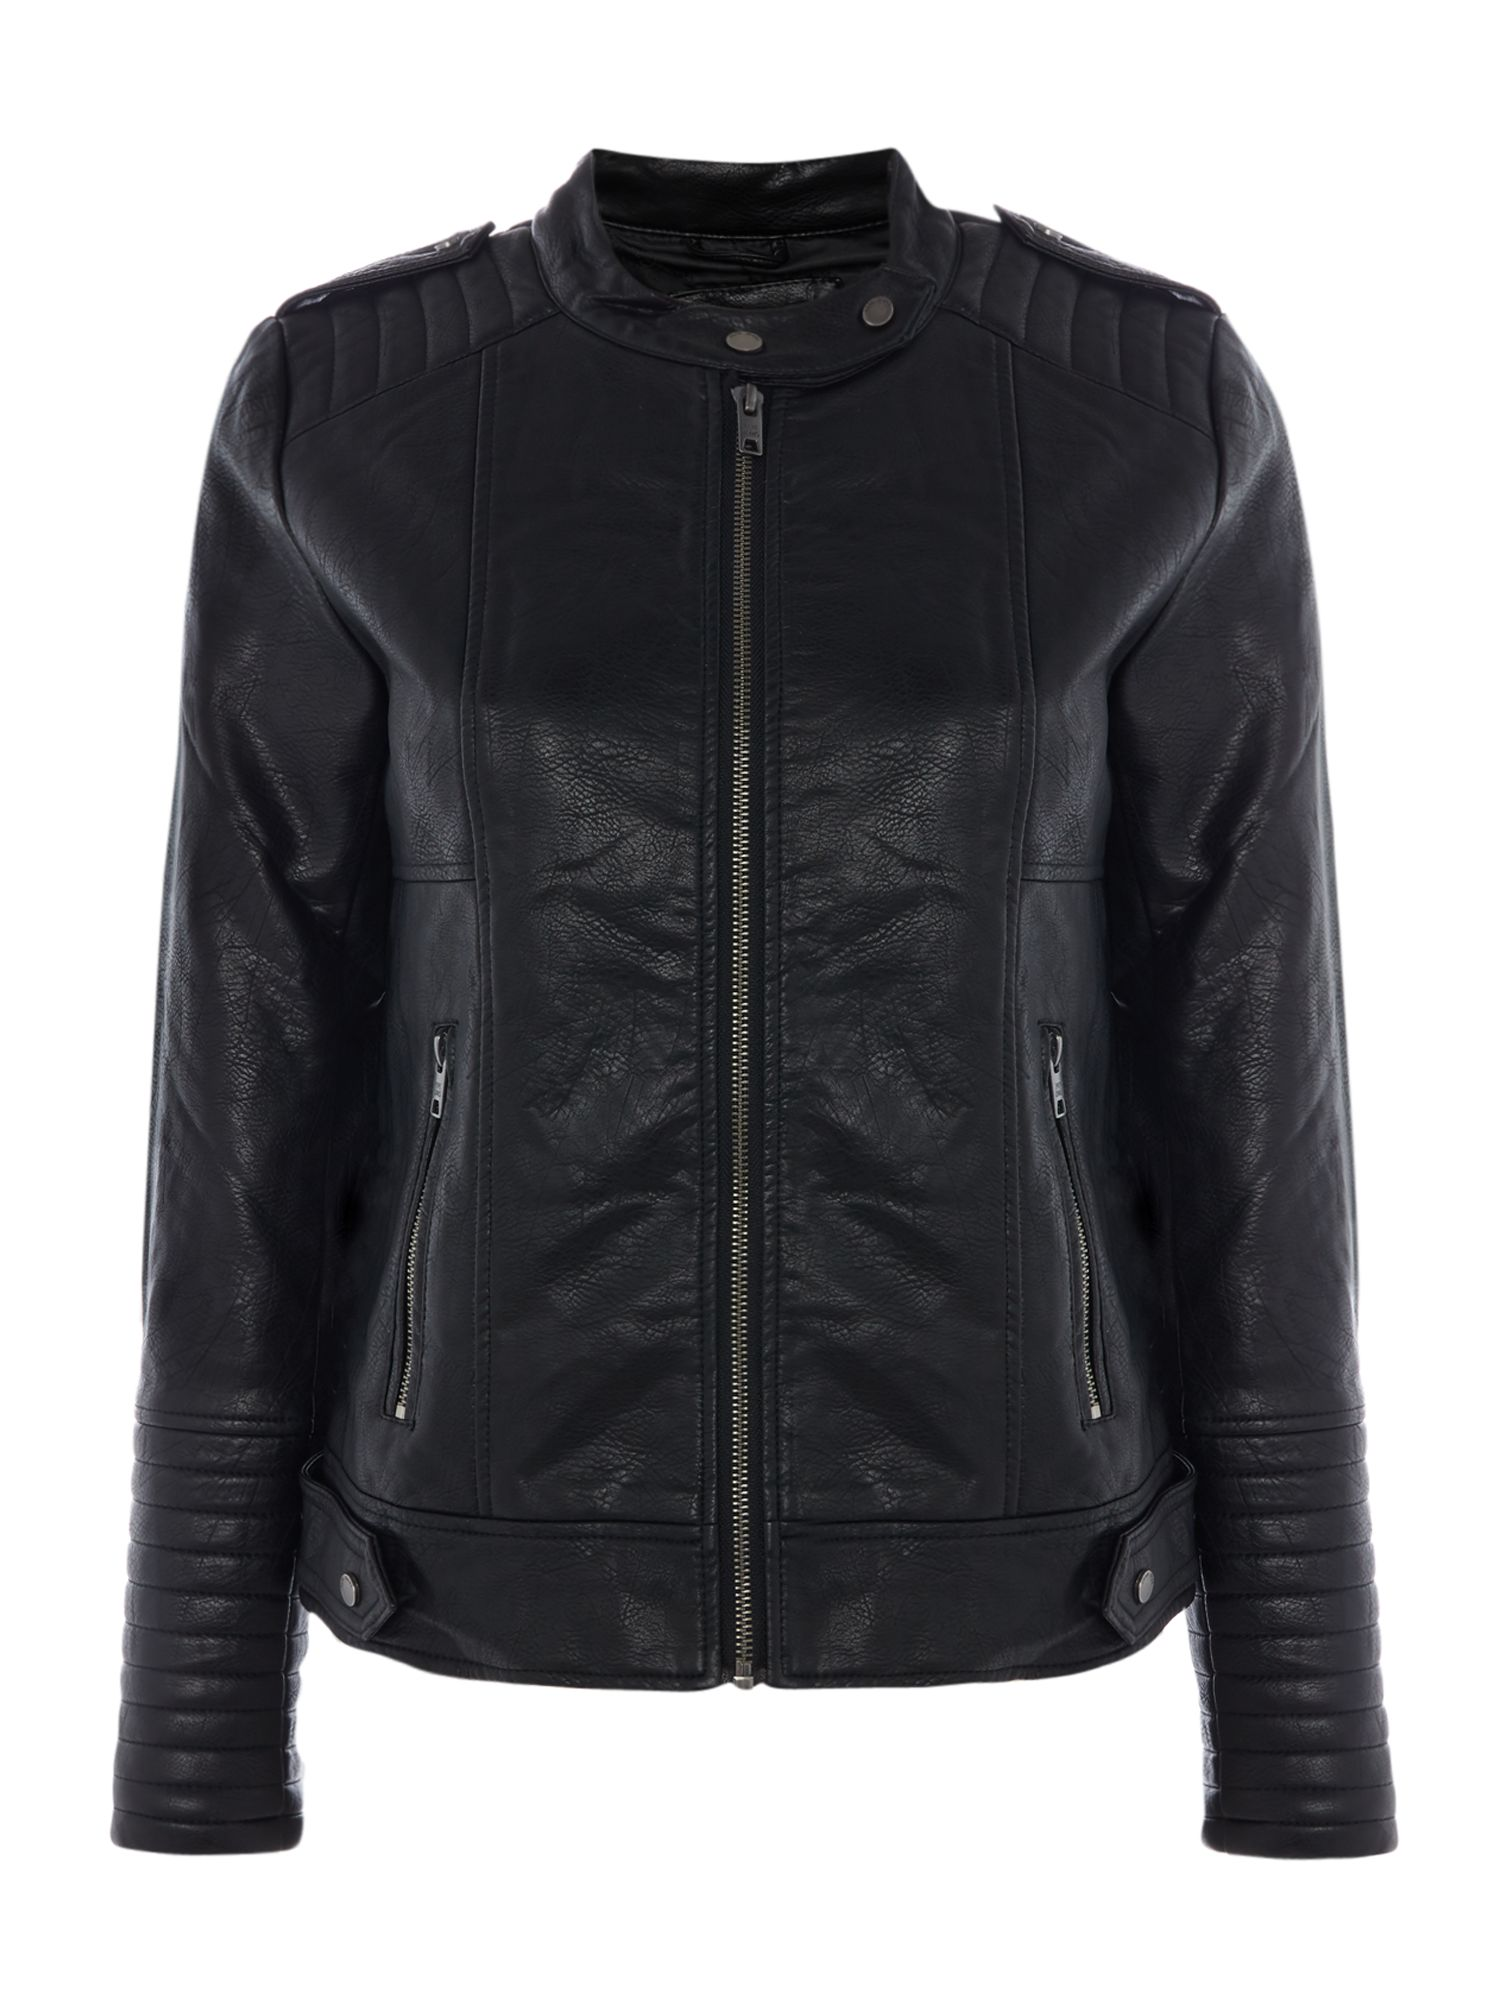 Pepe Jeans Pepe Jeans Outerwear, Black